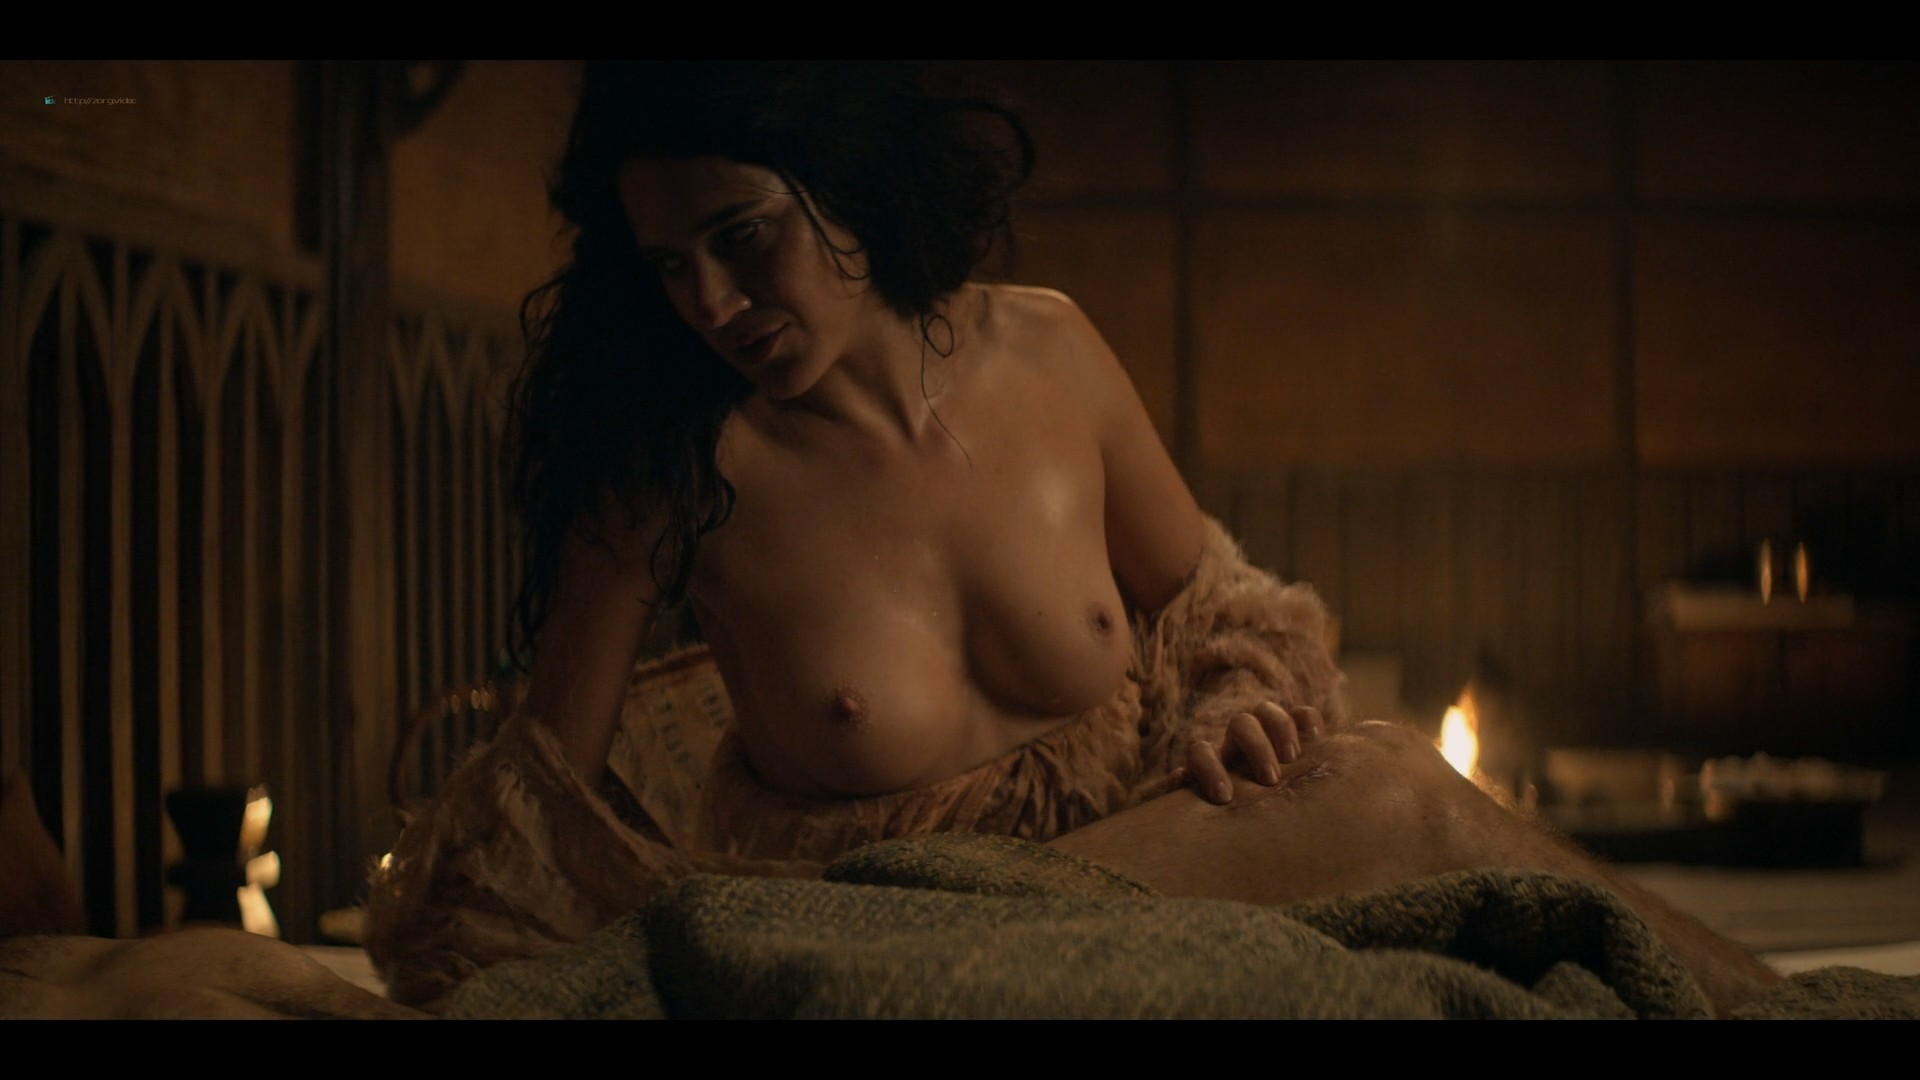 Anya Chalotra nude sex others nude too - The Witcher (2019) s1e1-3 HD 1080p WEB-DL (14)